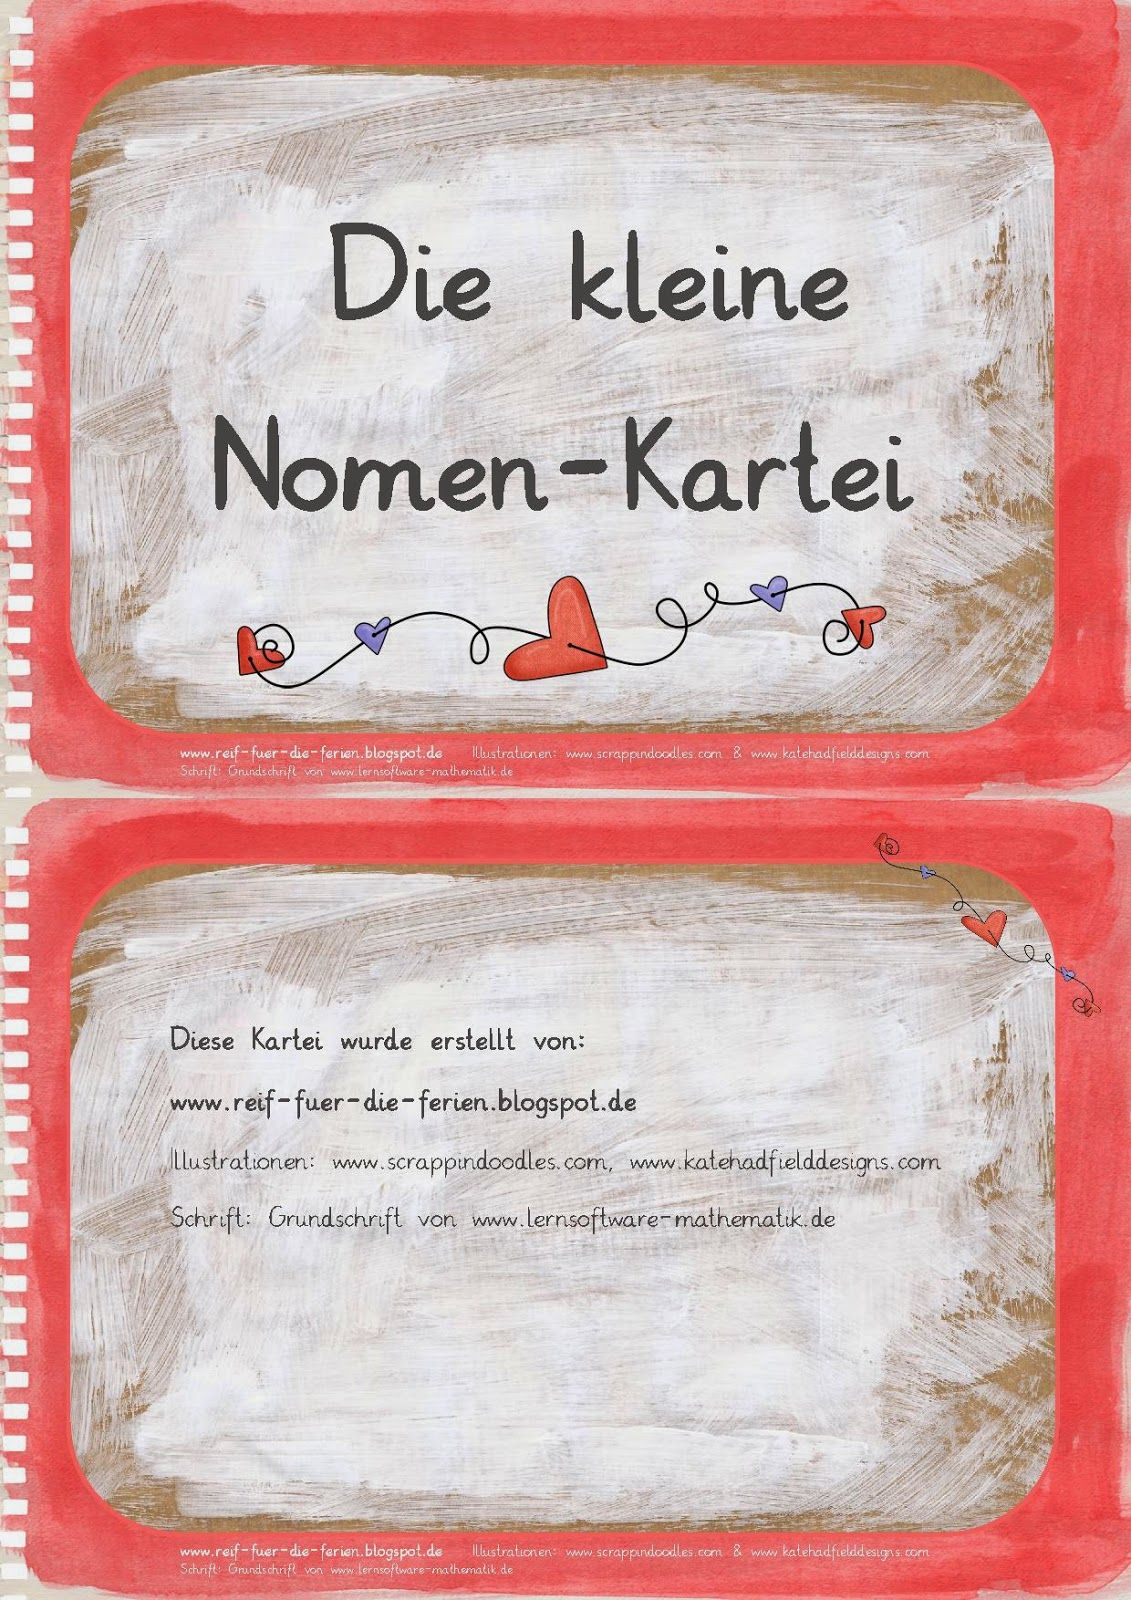 Die kleine Nomen-Kartei | DİLLER | Pinterest | Deutsch, School and ...